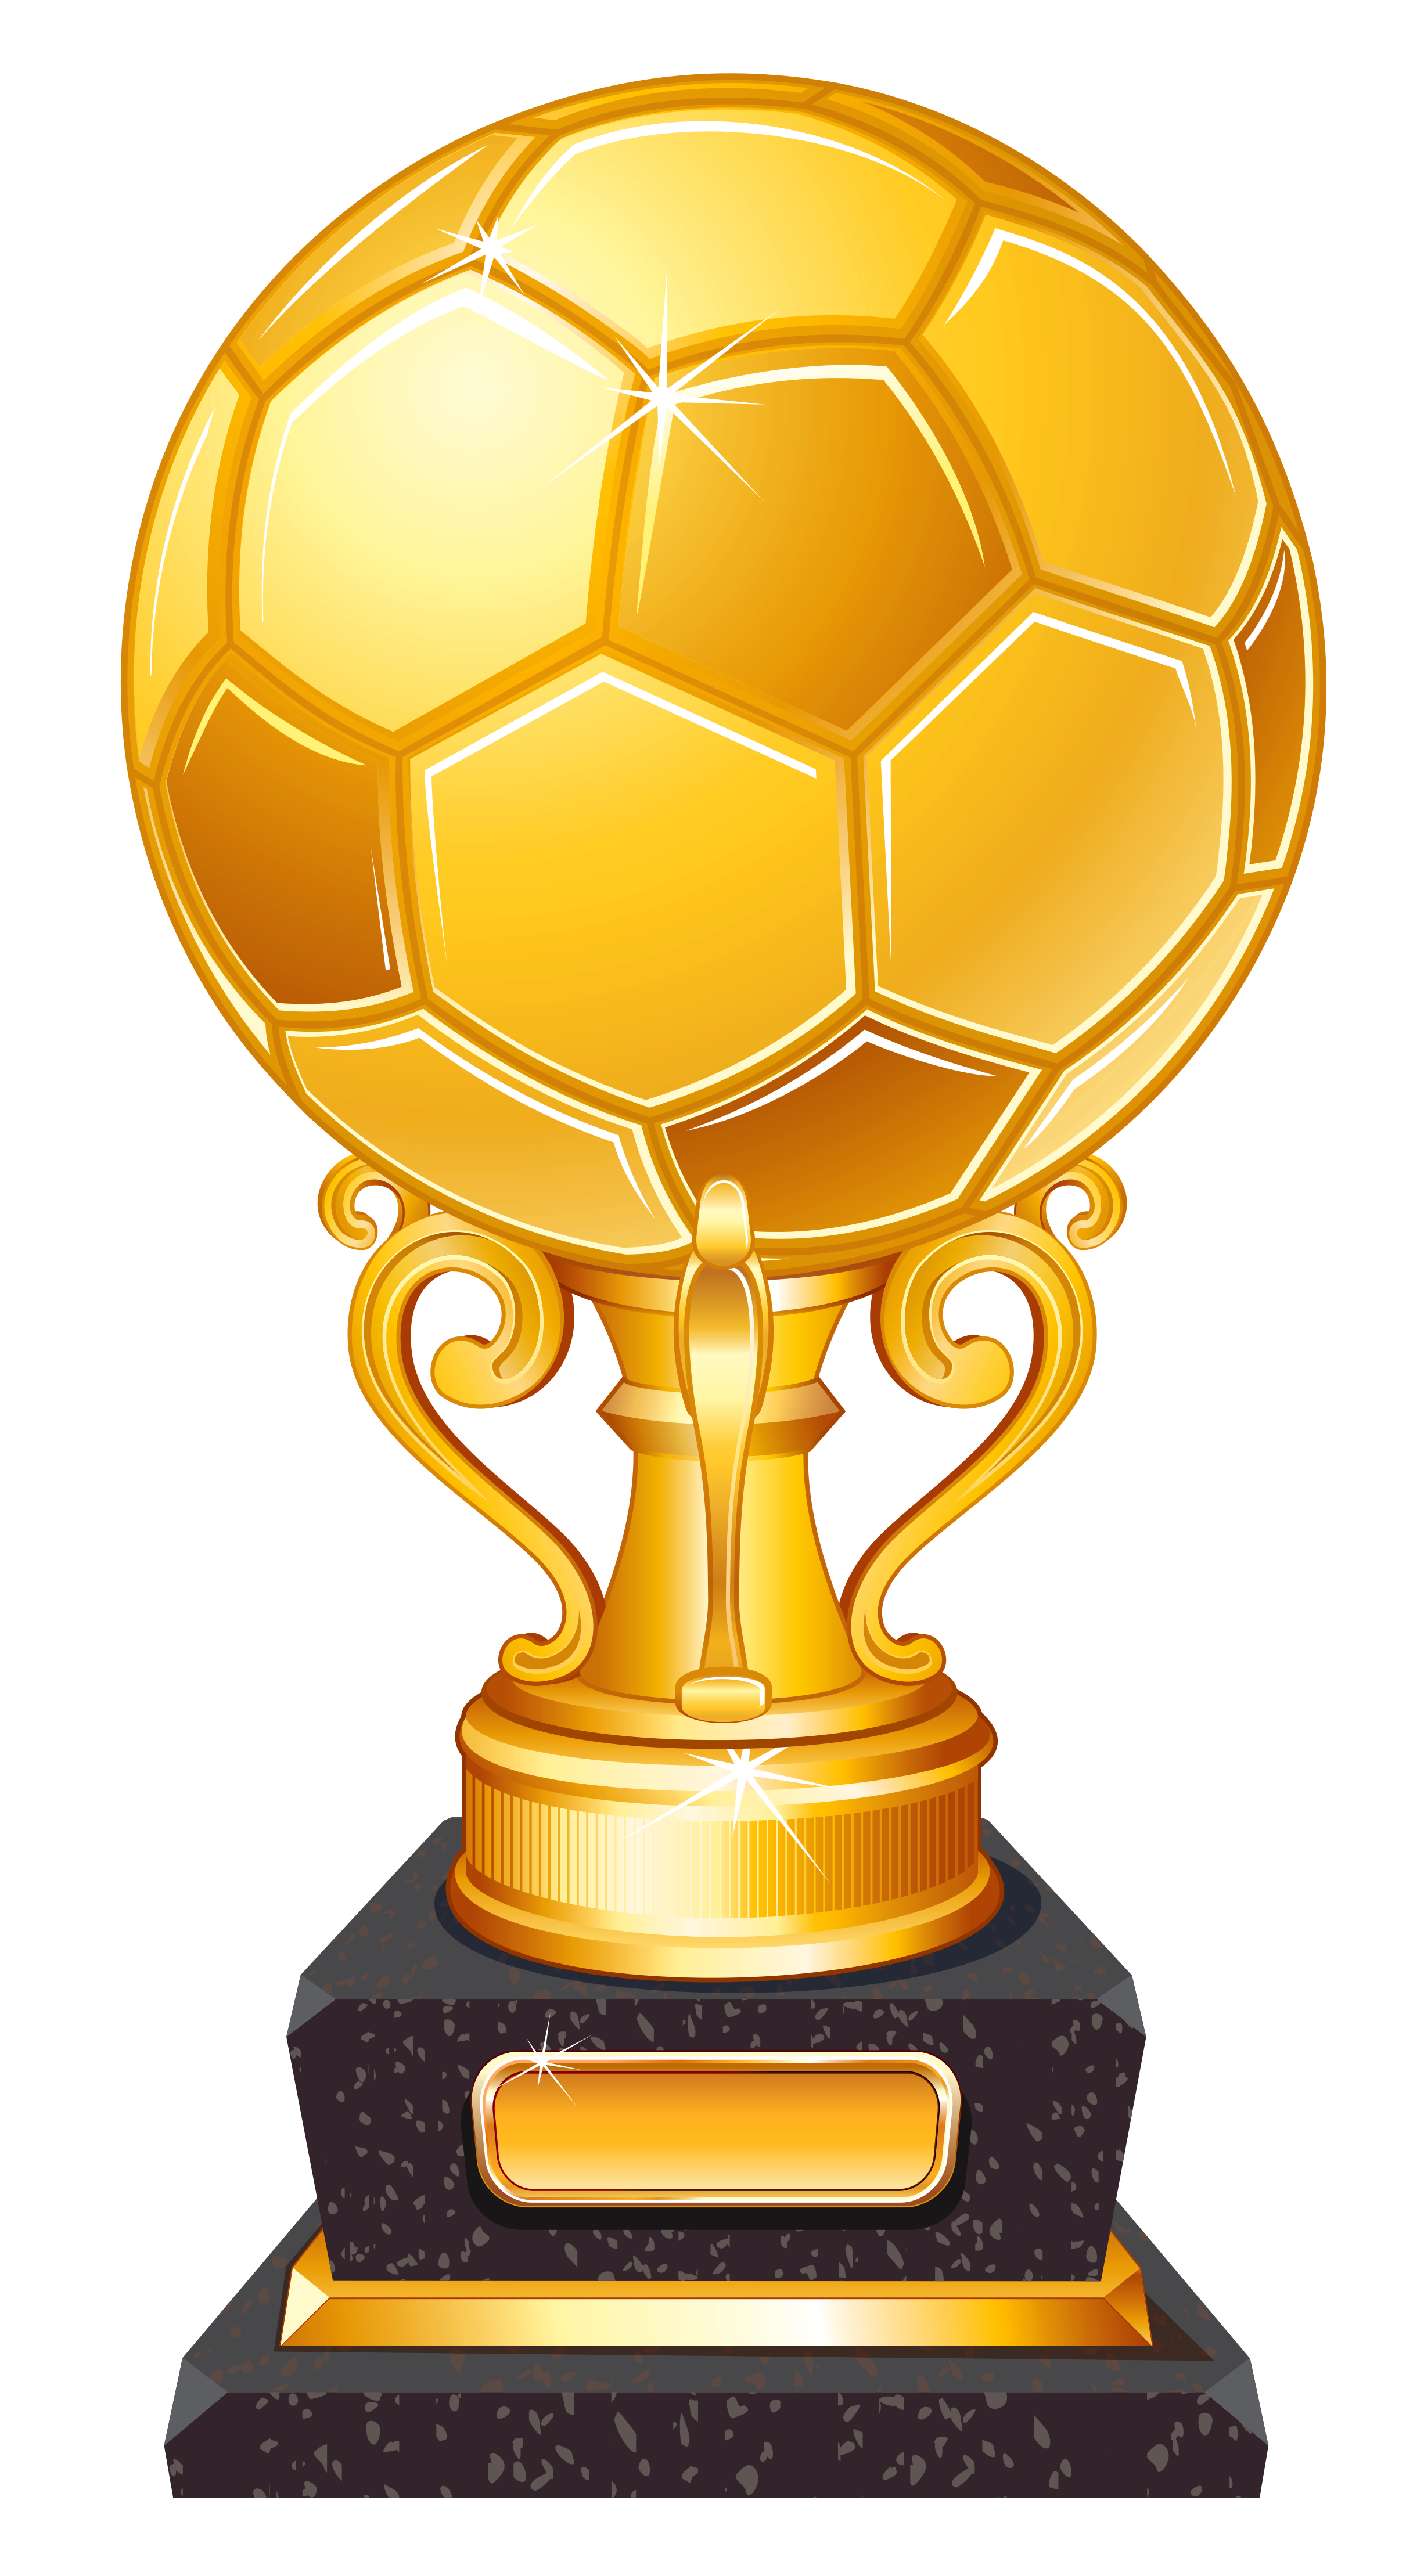 Football trophy clipart image transparent download Trophy Football Clip art - Gold Football Award Trophy Transparent ... image transparent download